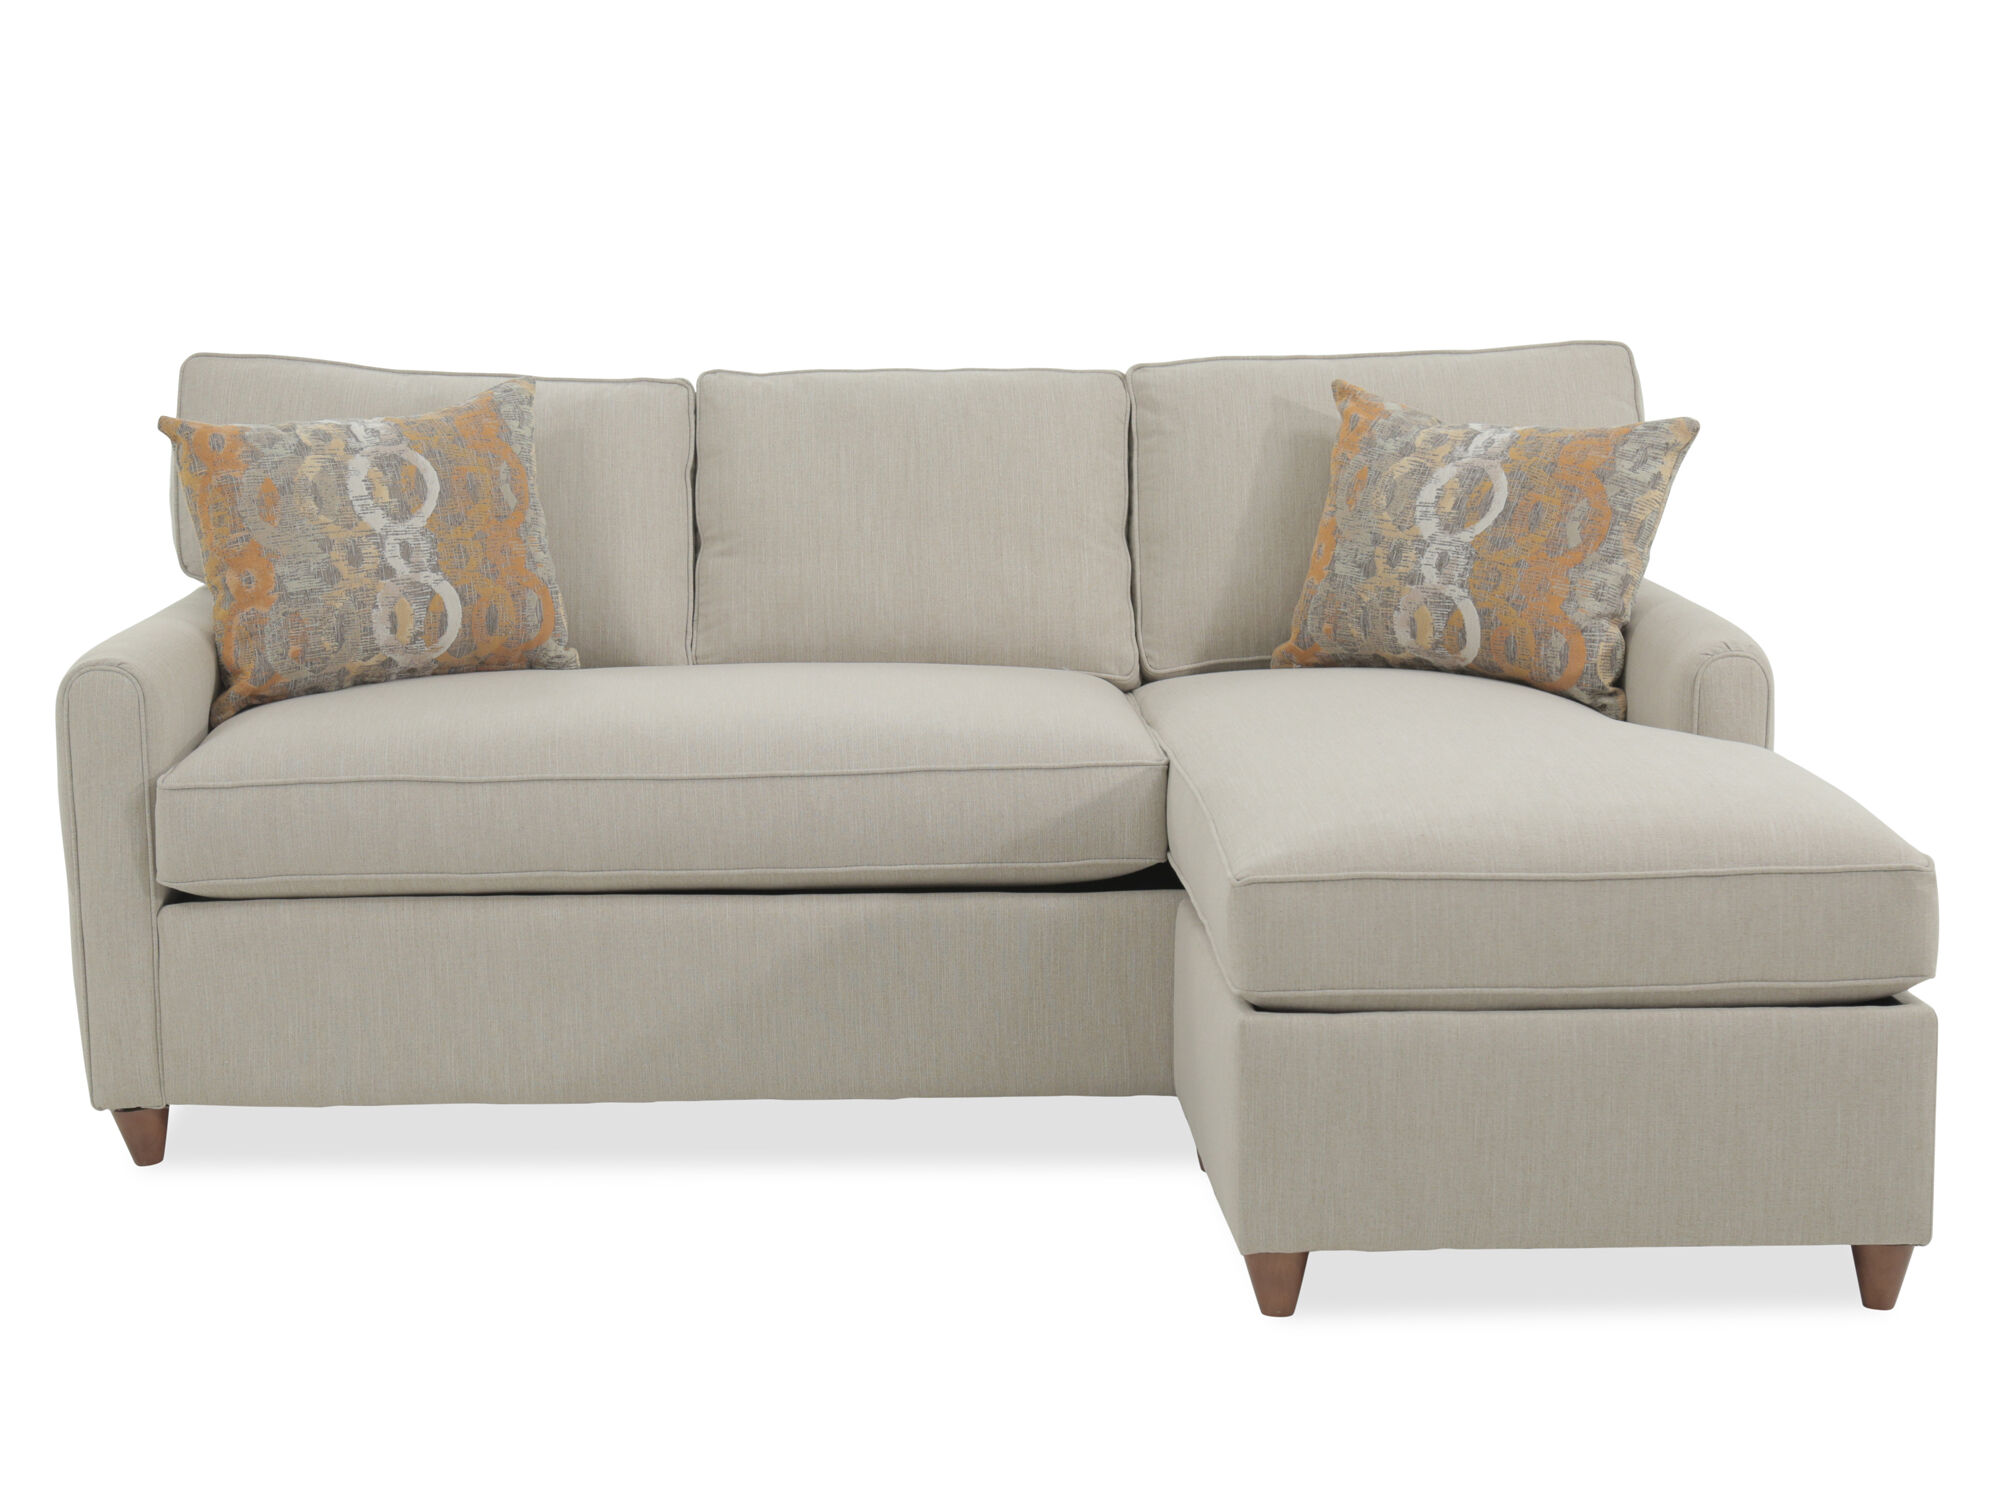 Two Piece Casual Sleeper Sectional In Cream ...